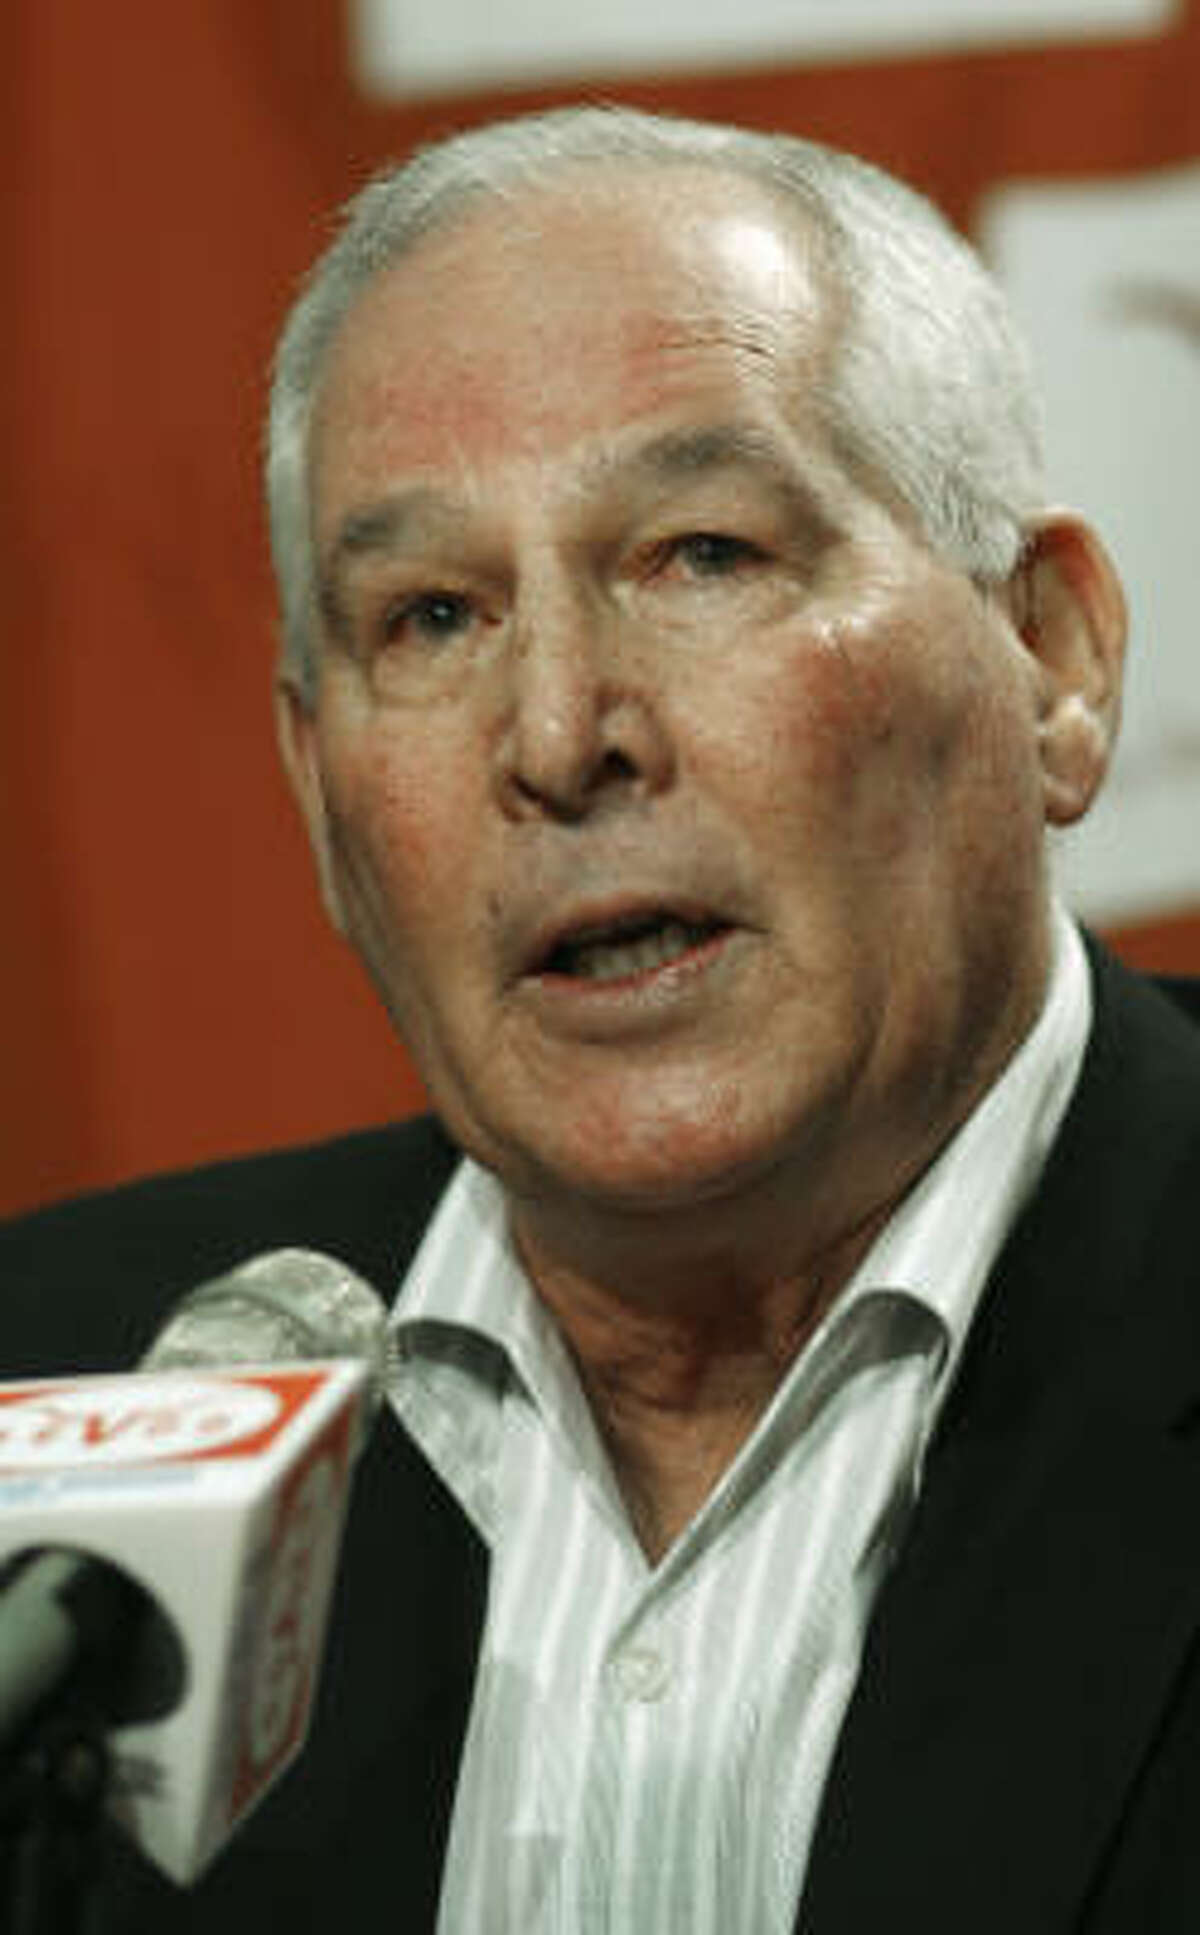 Augie Garrido's style works, like when he told his team that it would overcome a six-run deficit against Arizona State.